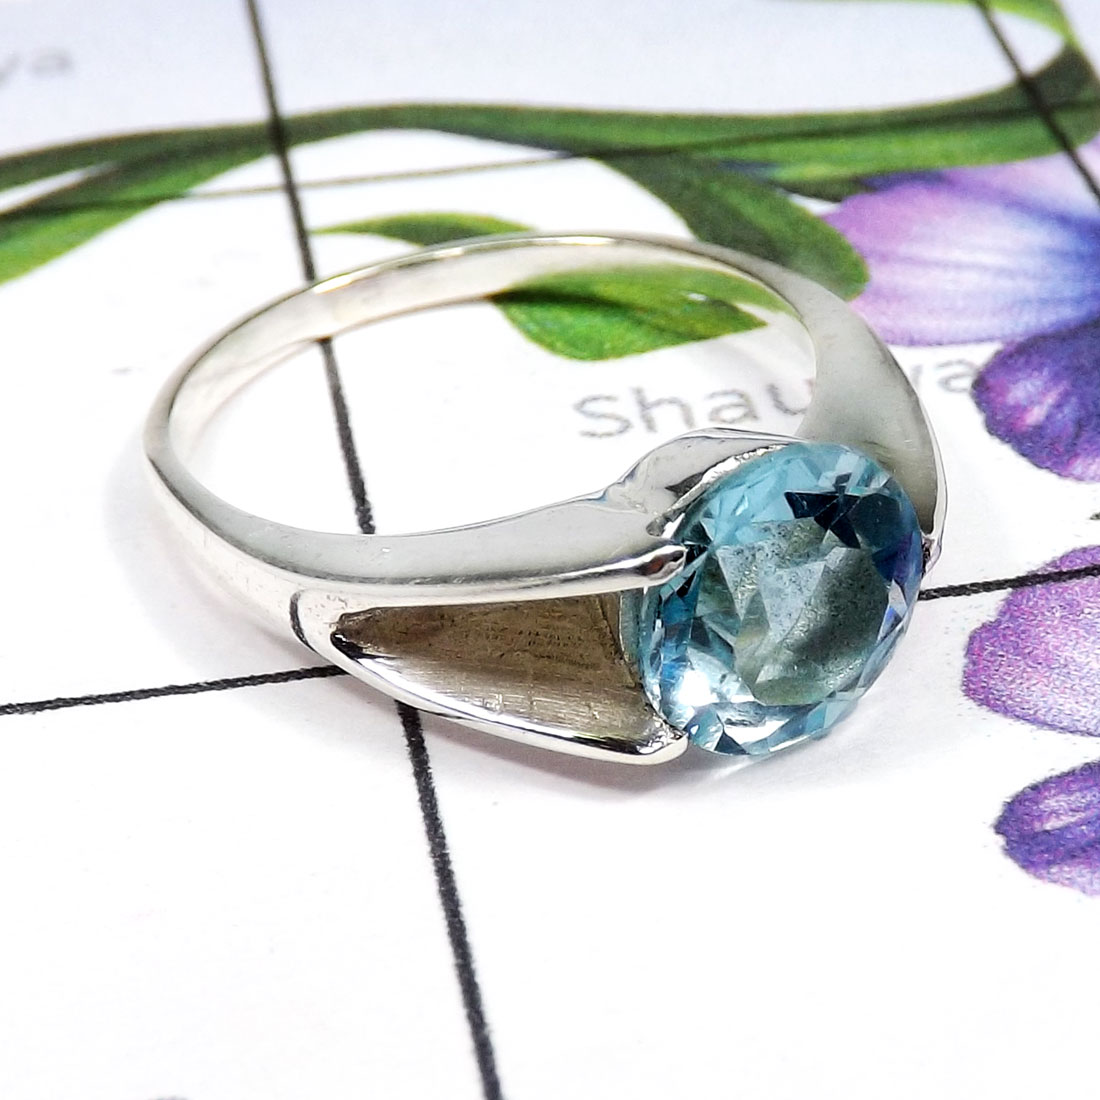 Blue Topaz B - SCR880-EXCLUSIVE NEW DESIGNER CASTING RINGS WITH 925 STERLING SI